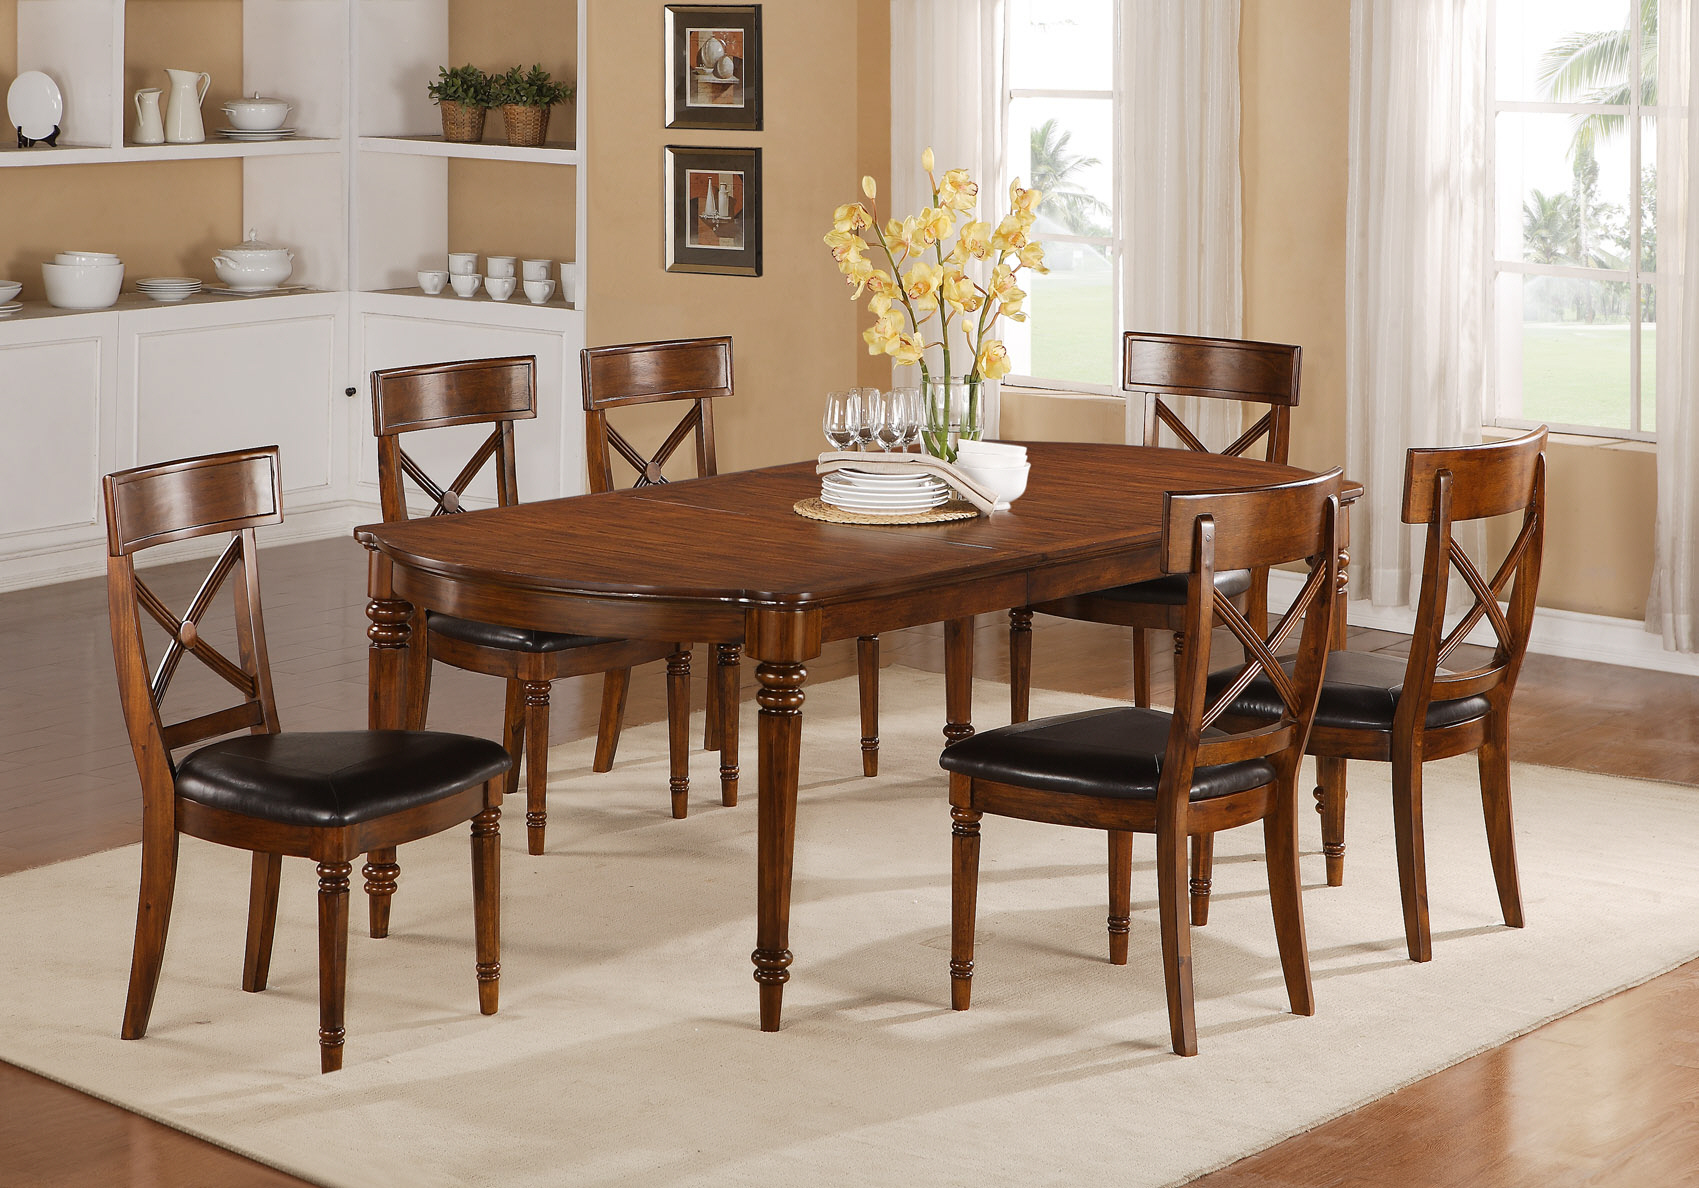 Dining table cracked glass top dining table - Broken glass dining table ...